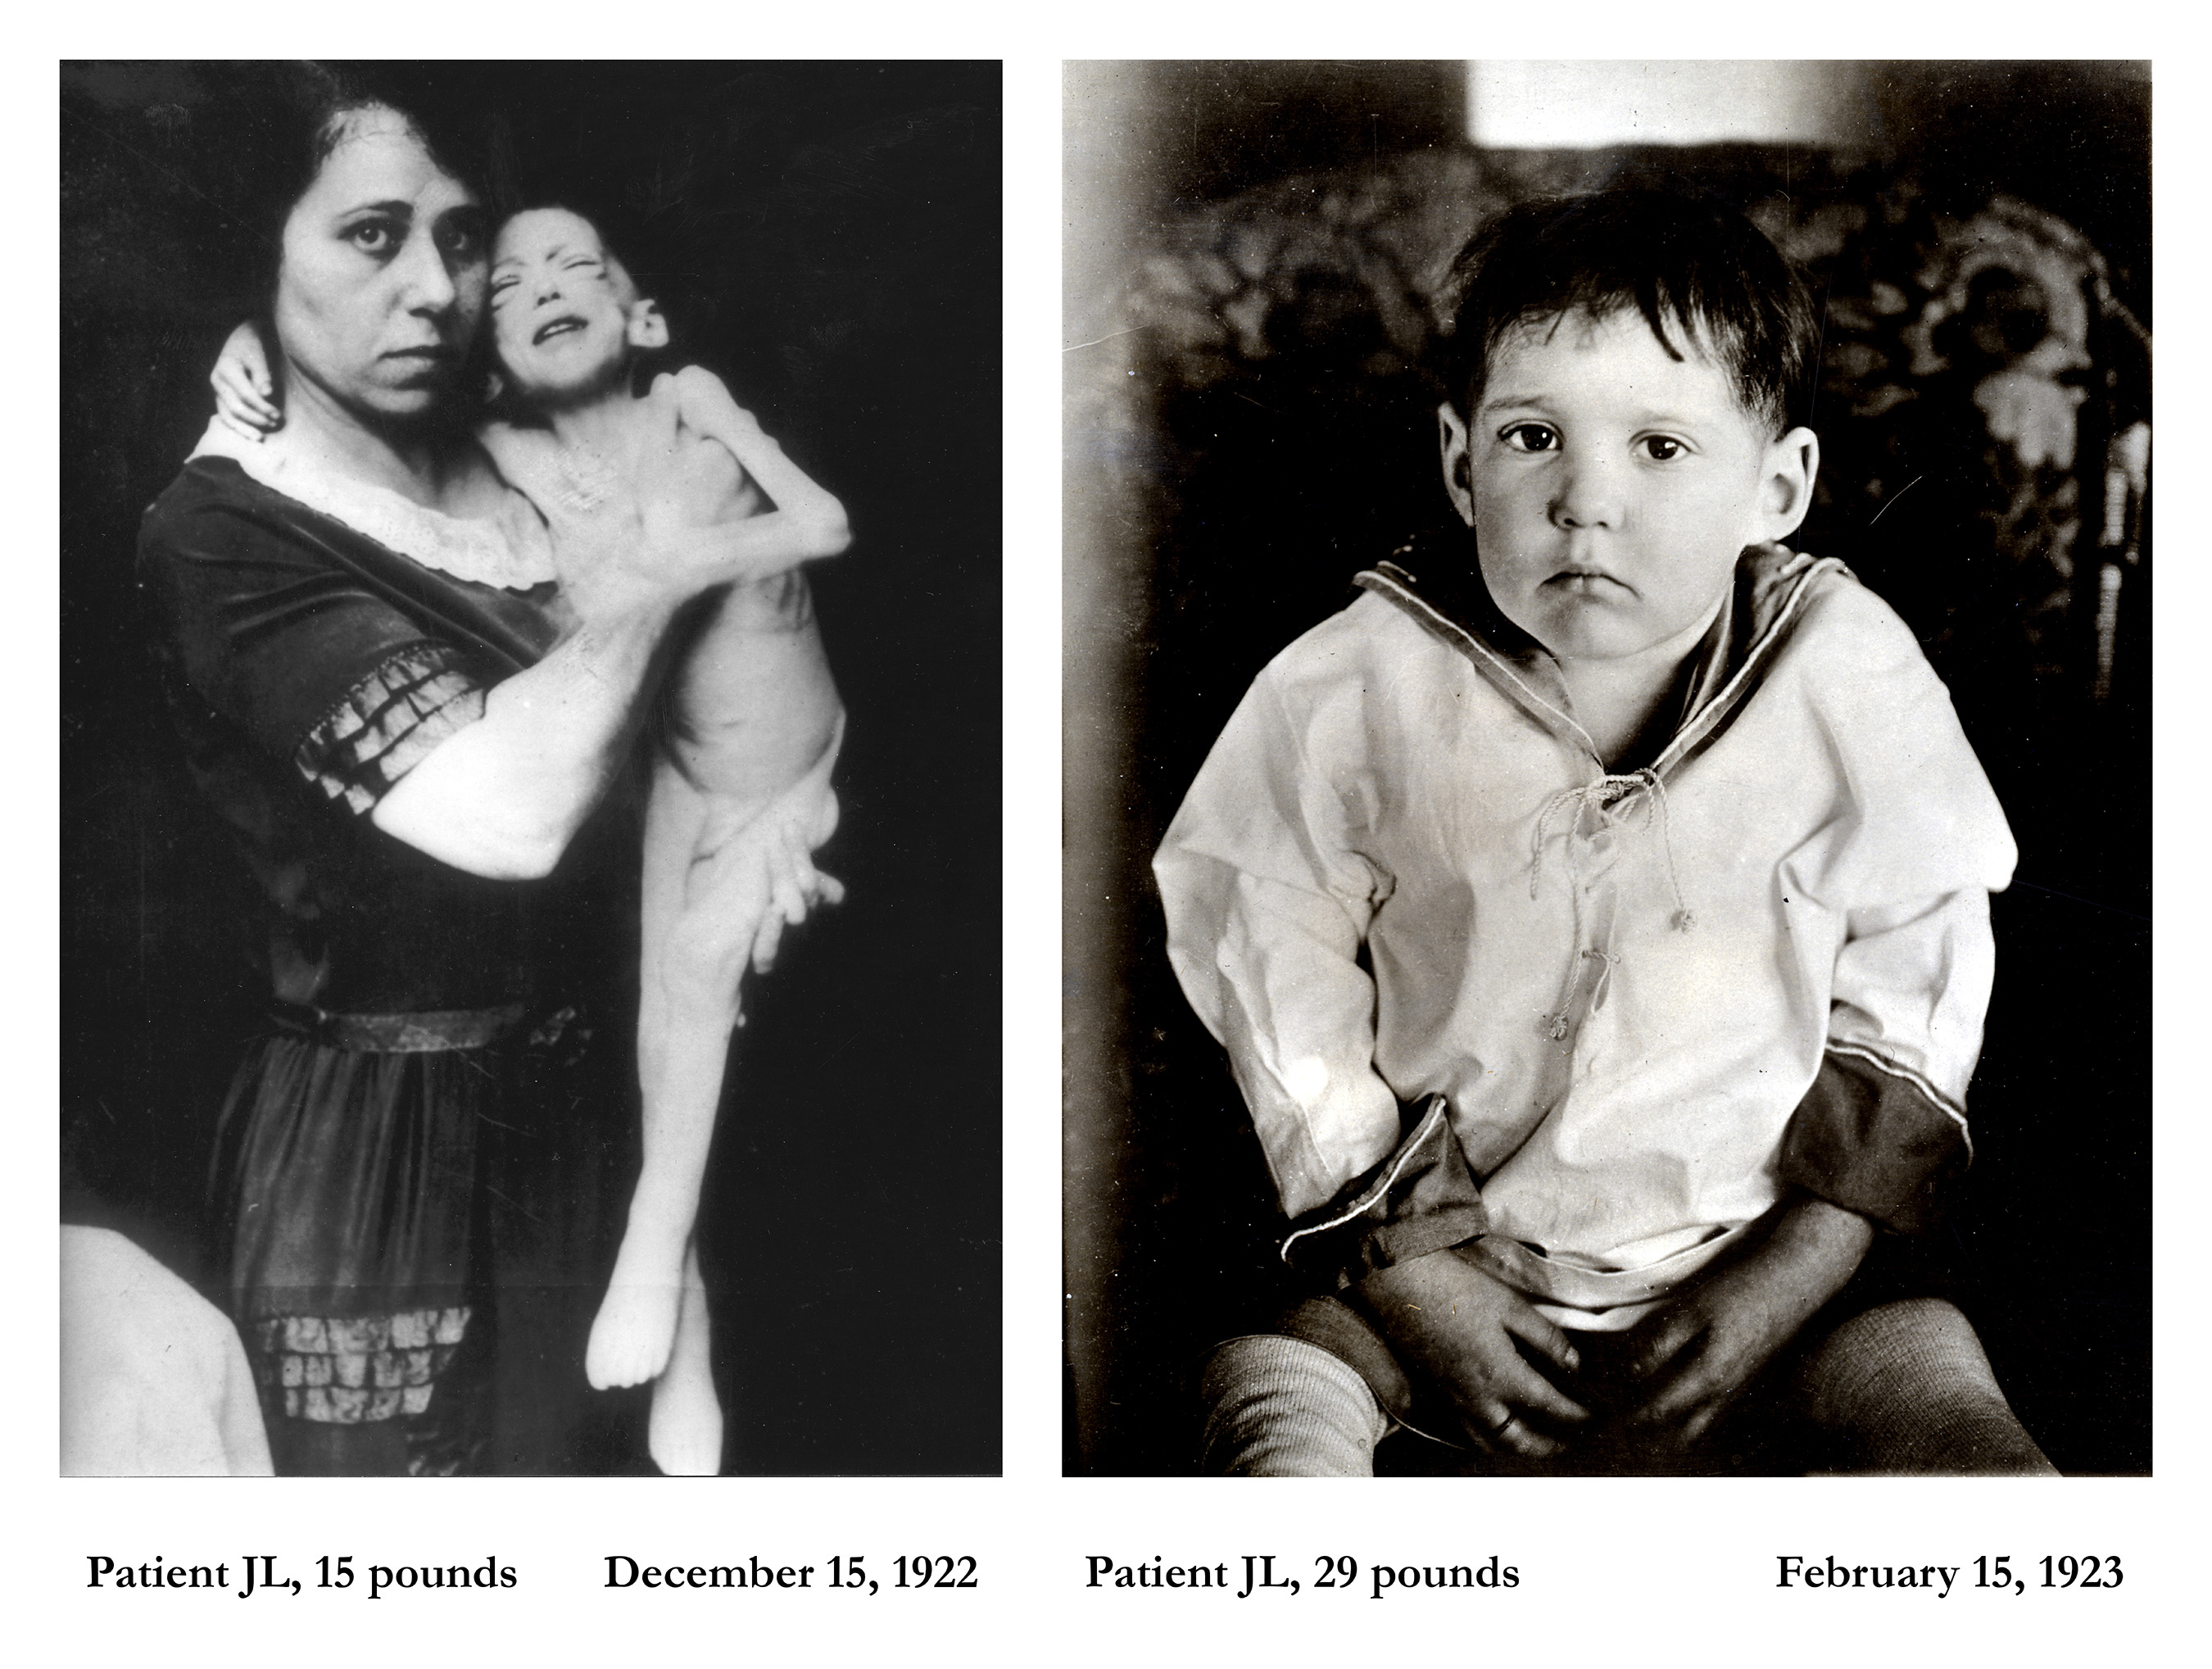 Less than 100 years ago, diabetes was a fatal disease with no treatment other than starvation. In 1923, Lilly collaborated with Canadian scientists Dr. Frederick Banting and Charles Best to overcome production challenges to introduce the world's first commercial insulin product. Featured in this photo is J.L., a child with diabetes before, then two months after, taking insulin.